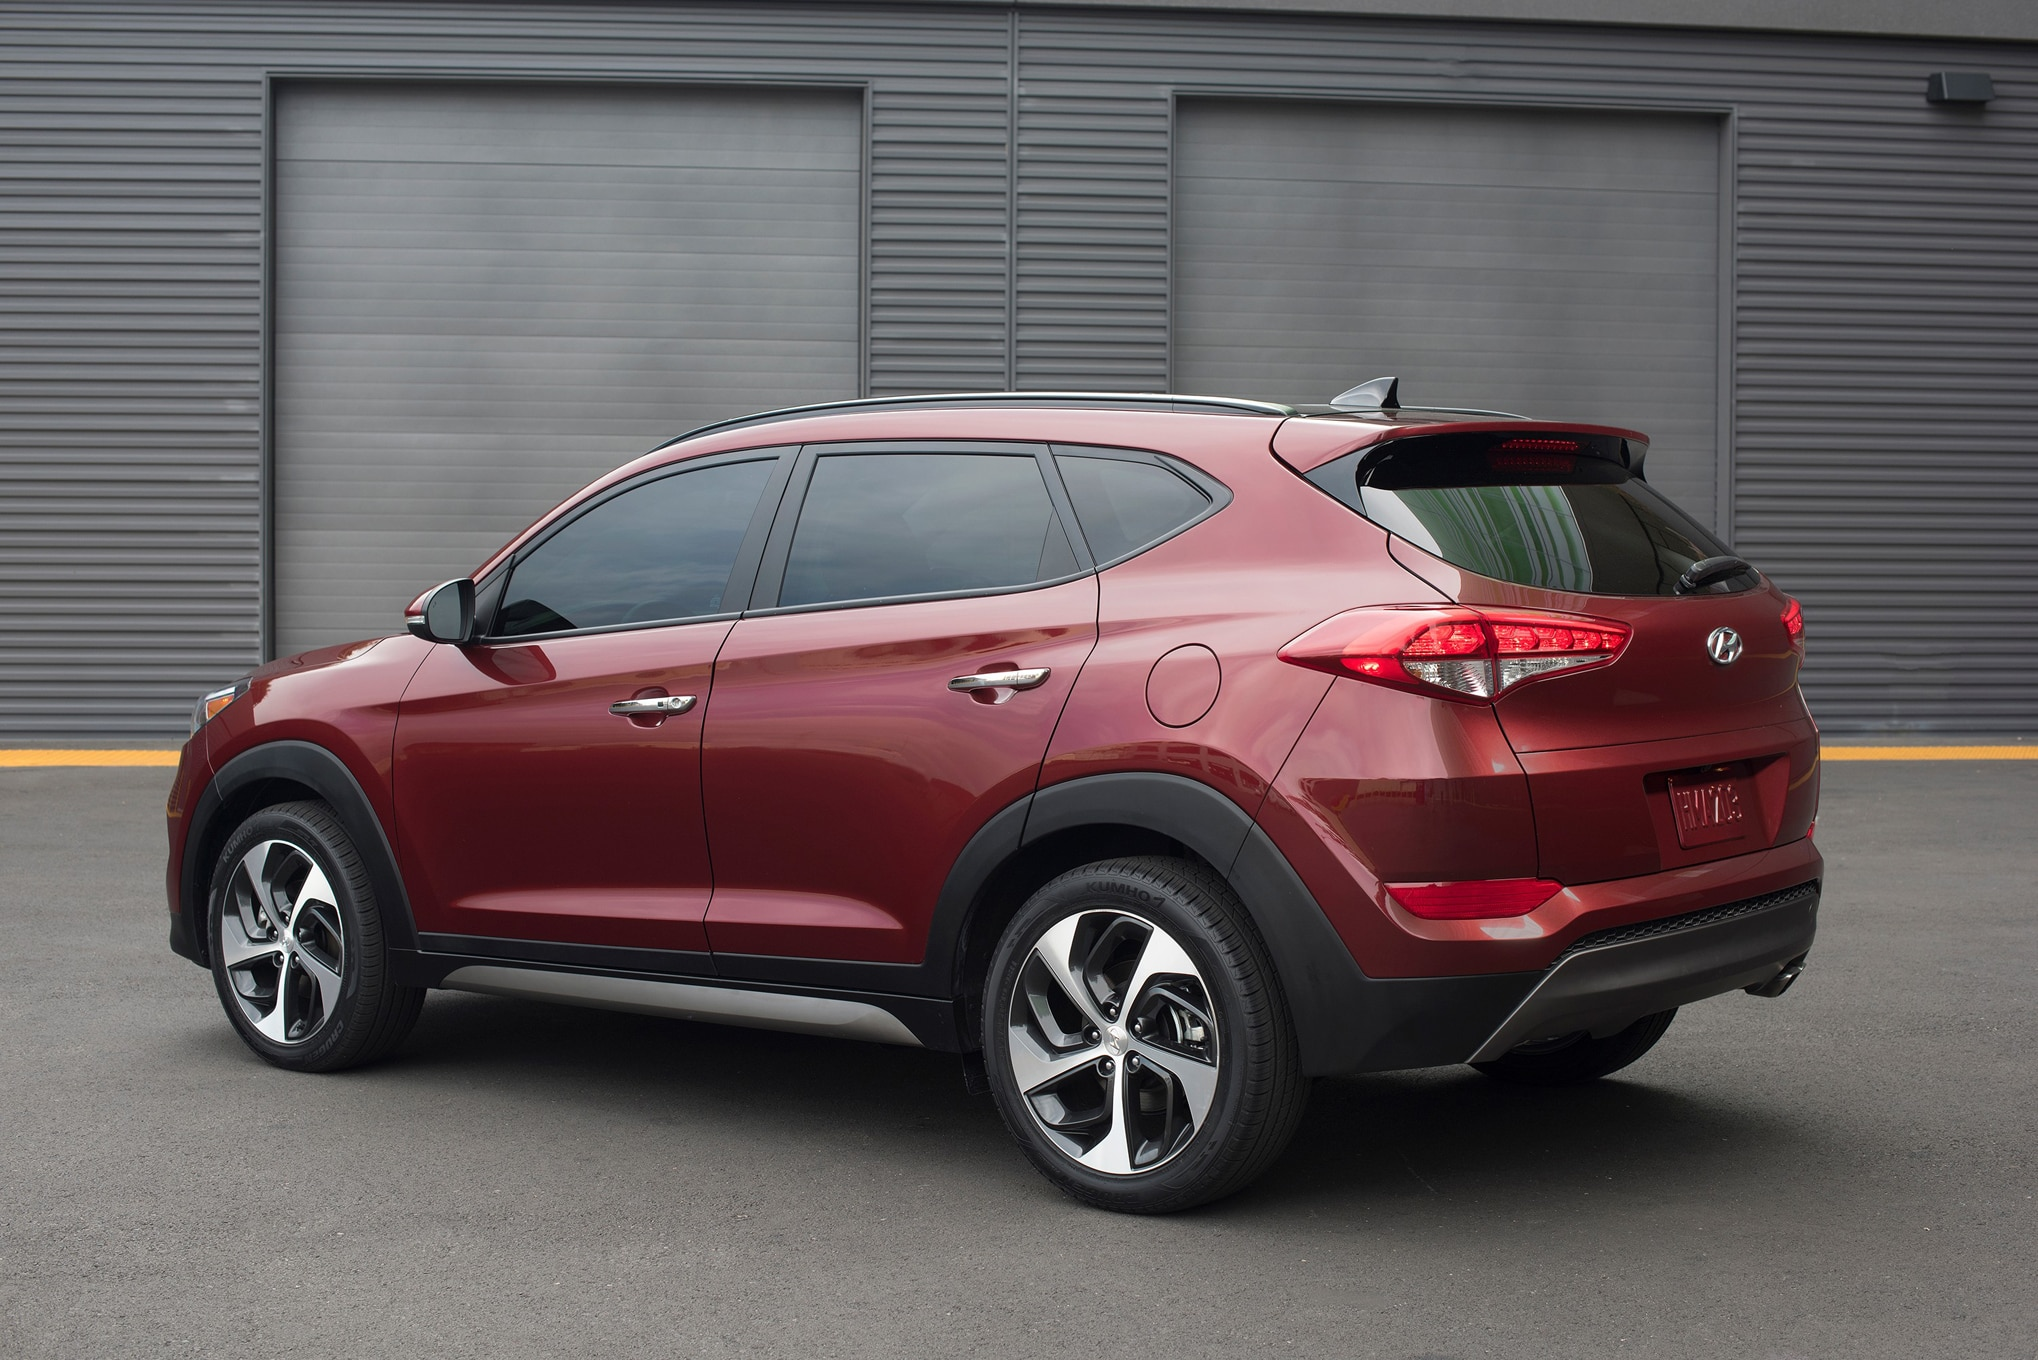 2016 Hyundai Tucson rear three quarter 032 2016 hyundai tucson starts at $23,595 photo gallery 2016 Hyundai Tucson Interior at webbmarketing.co